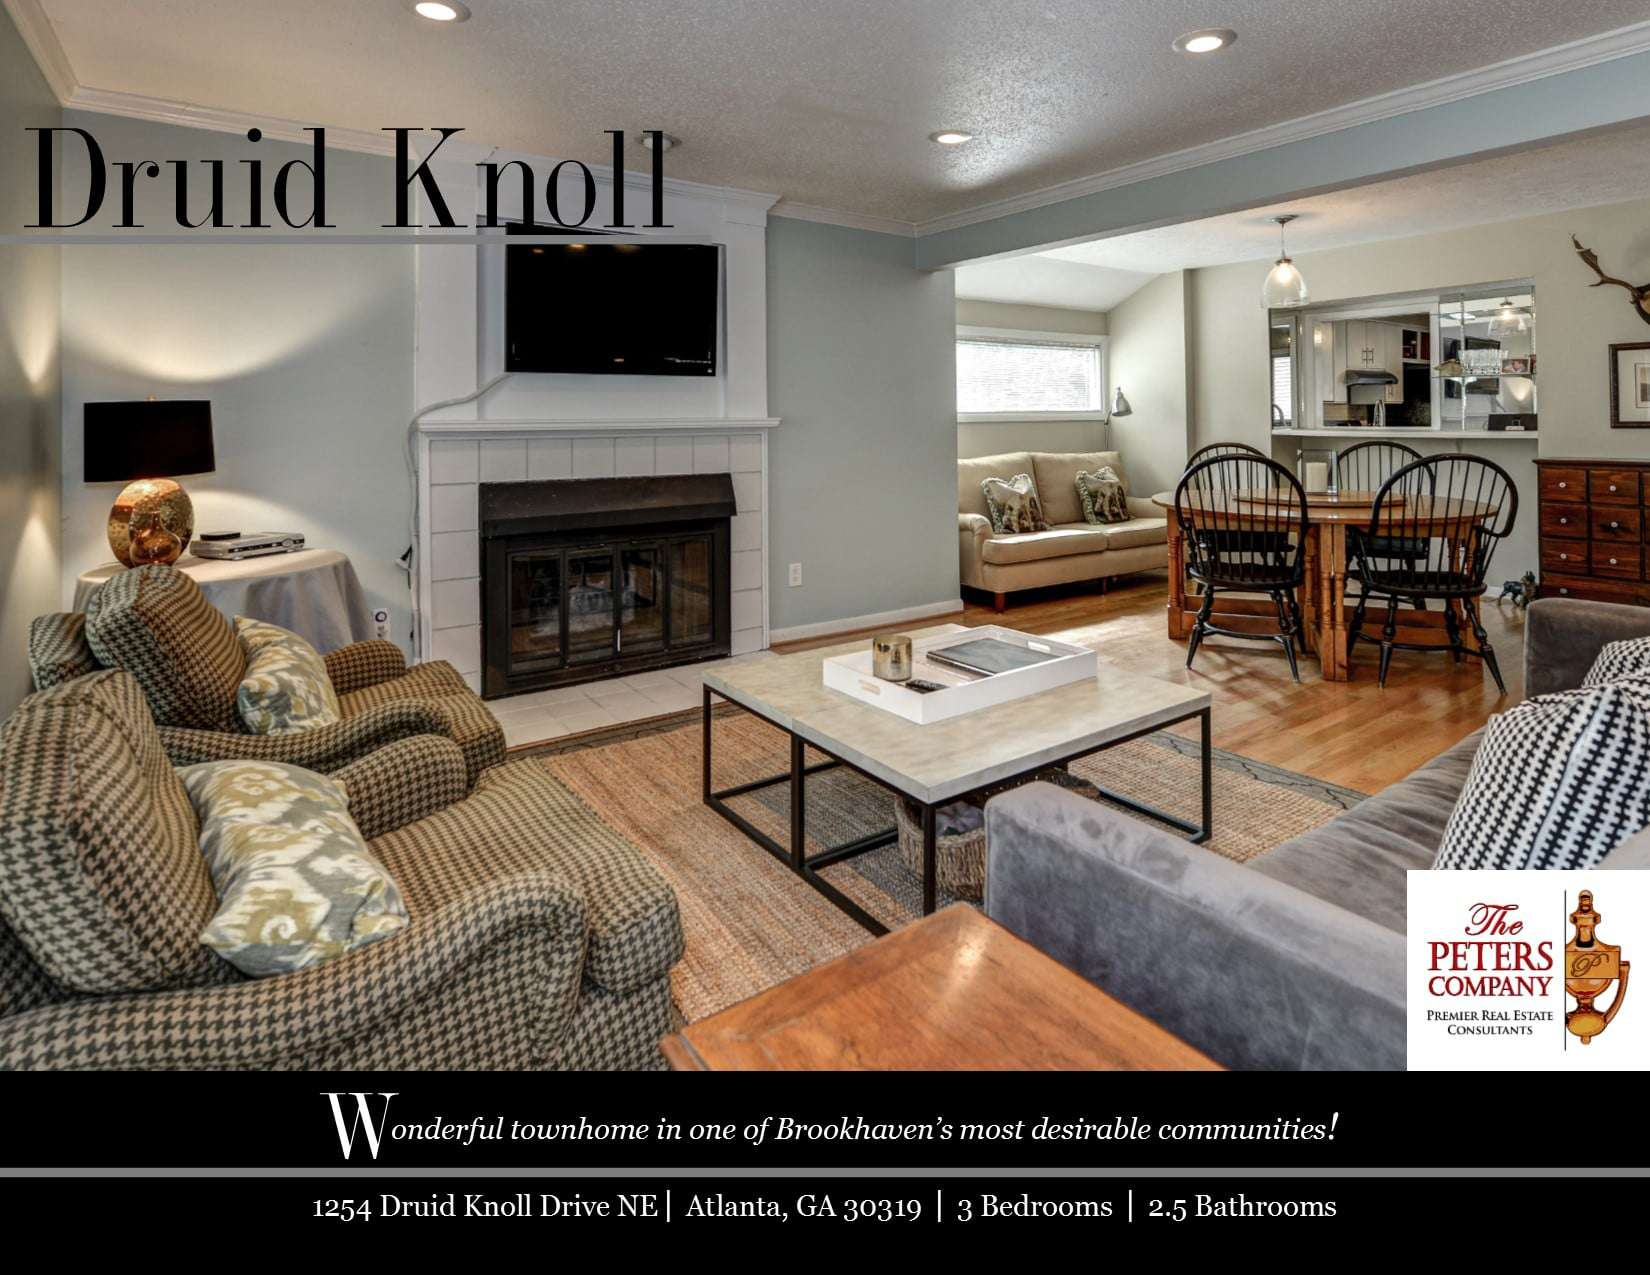 1254-Druid-Knoll-Drive-Flyer-front